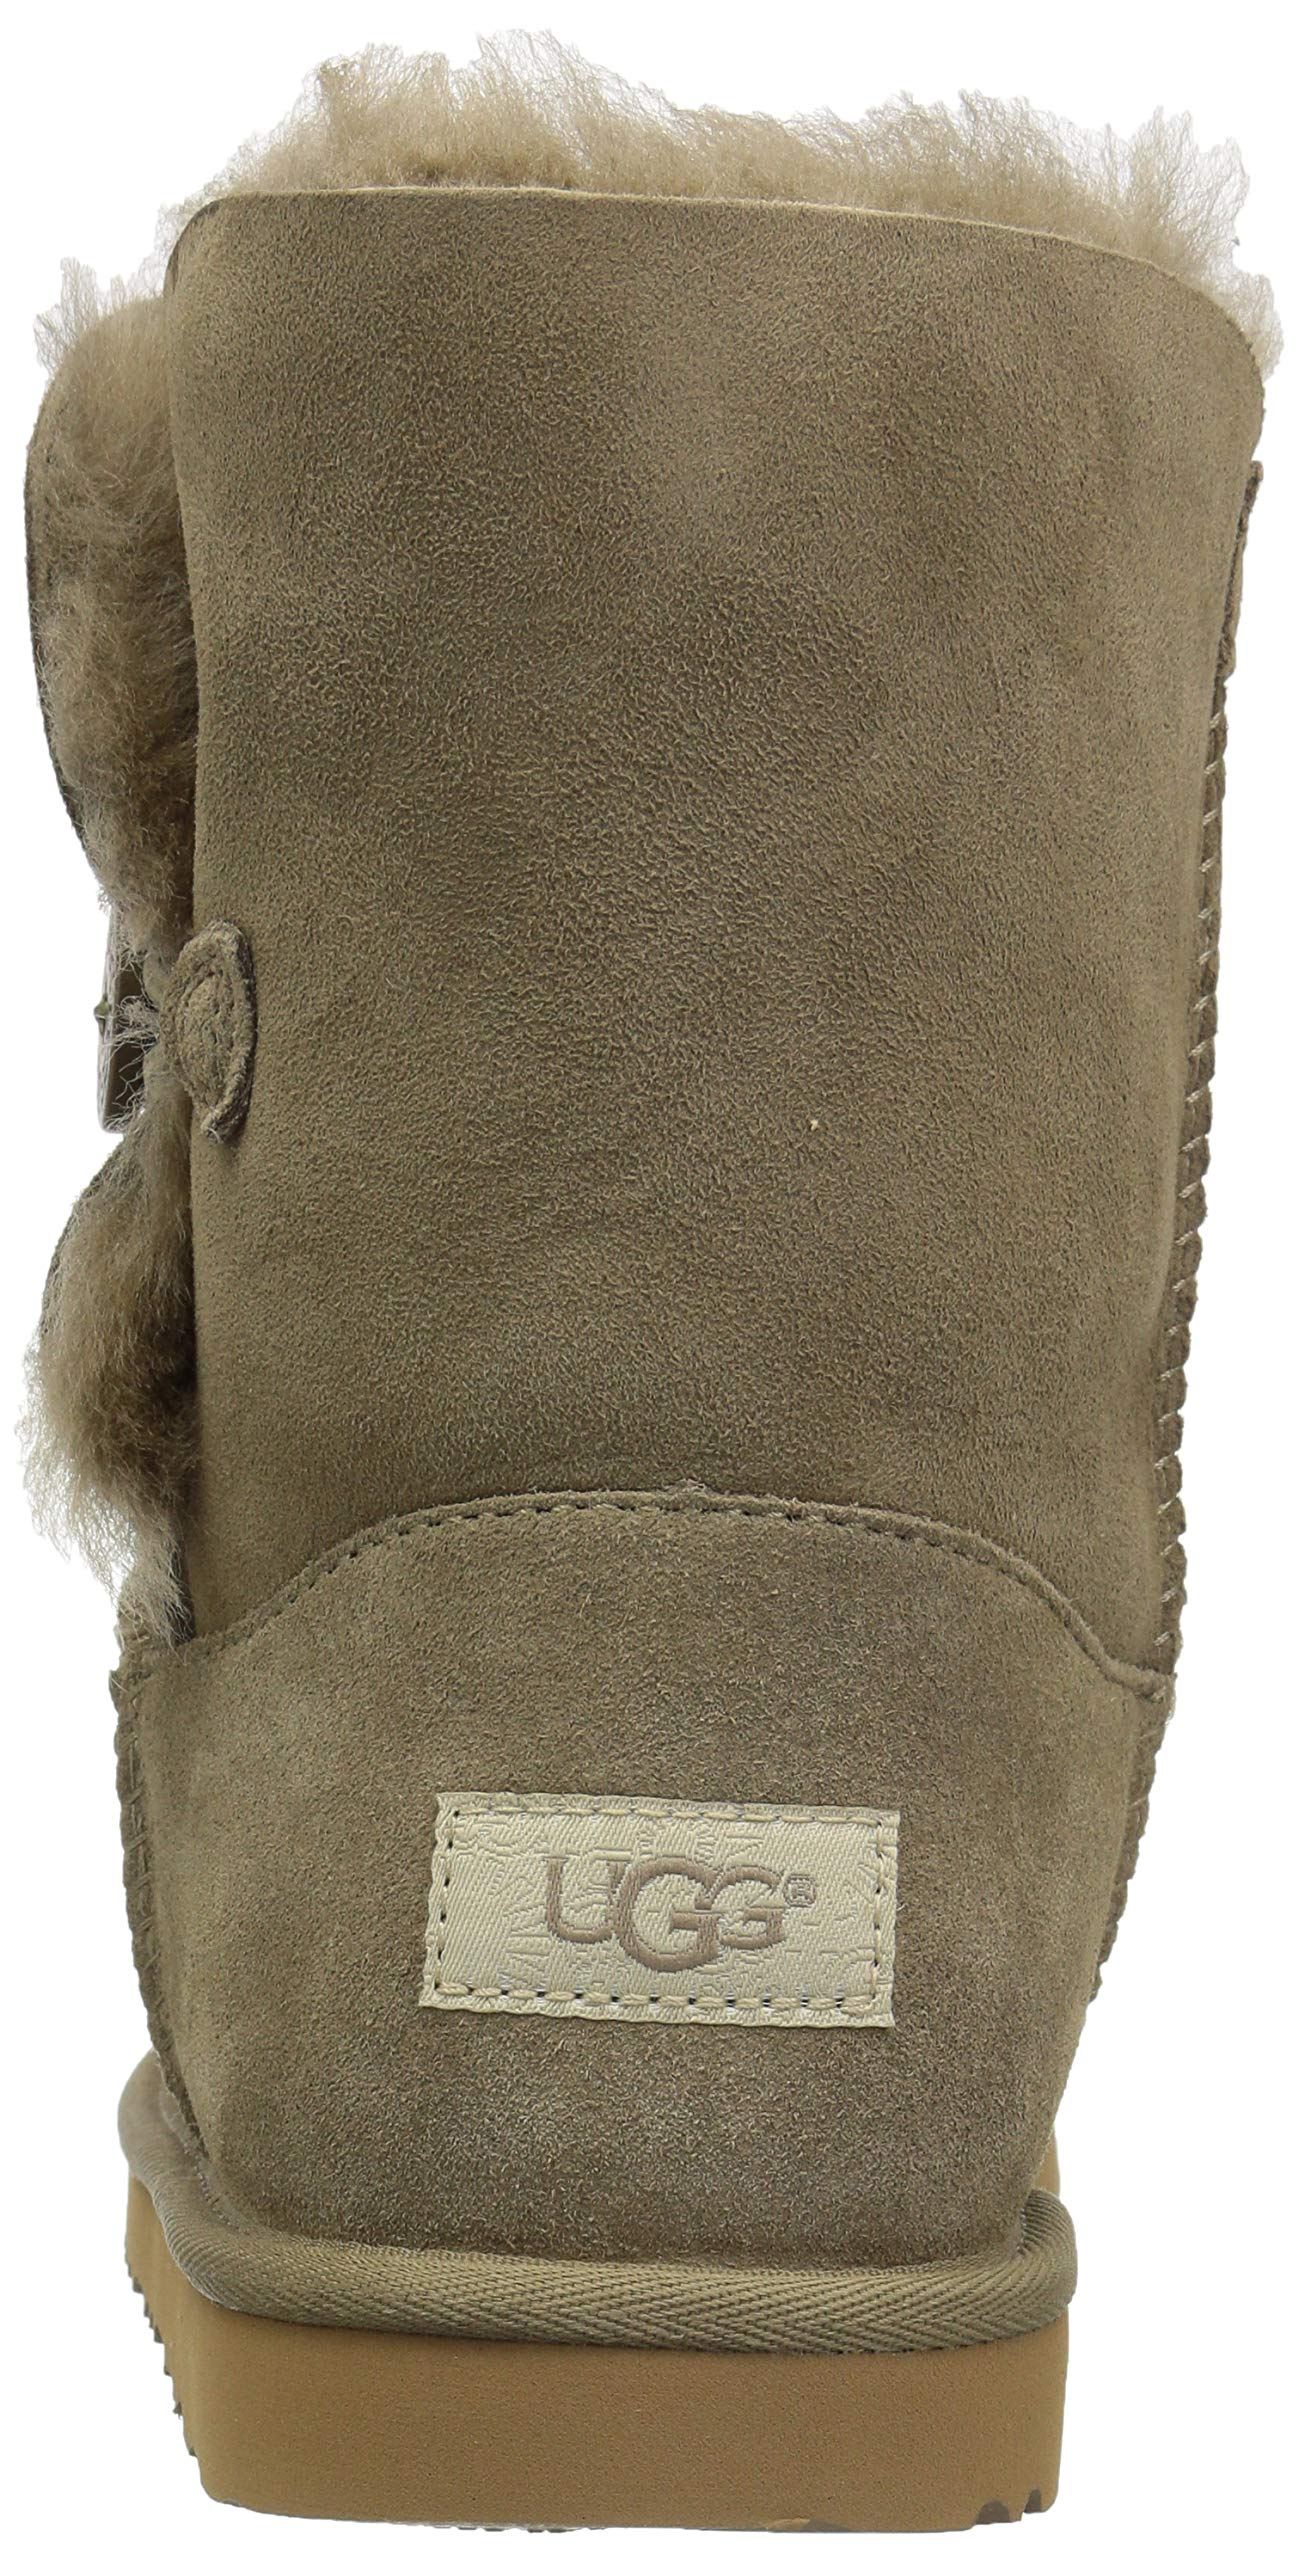 UGG Unisex K Bailey Button II Fashion Boot, Antilope, 13 M US Little Kid by UGG (Image #2)